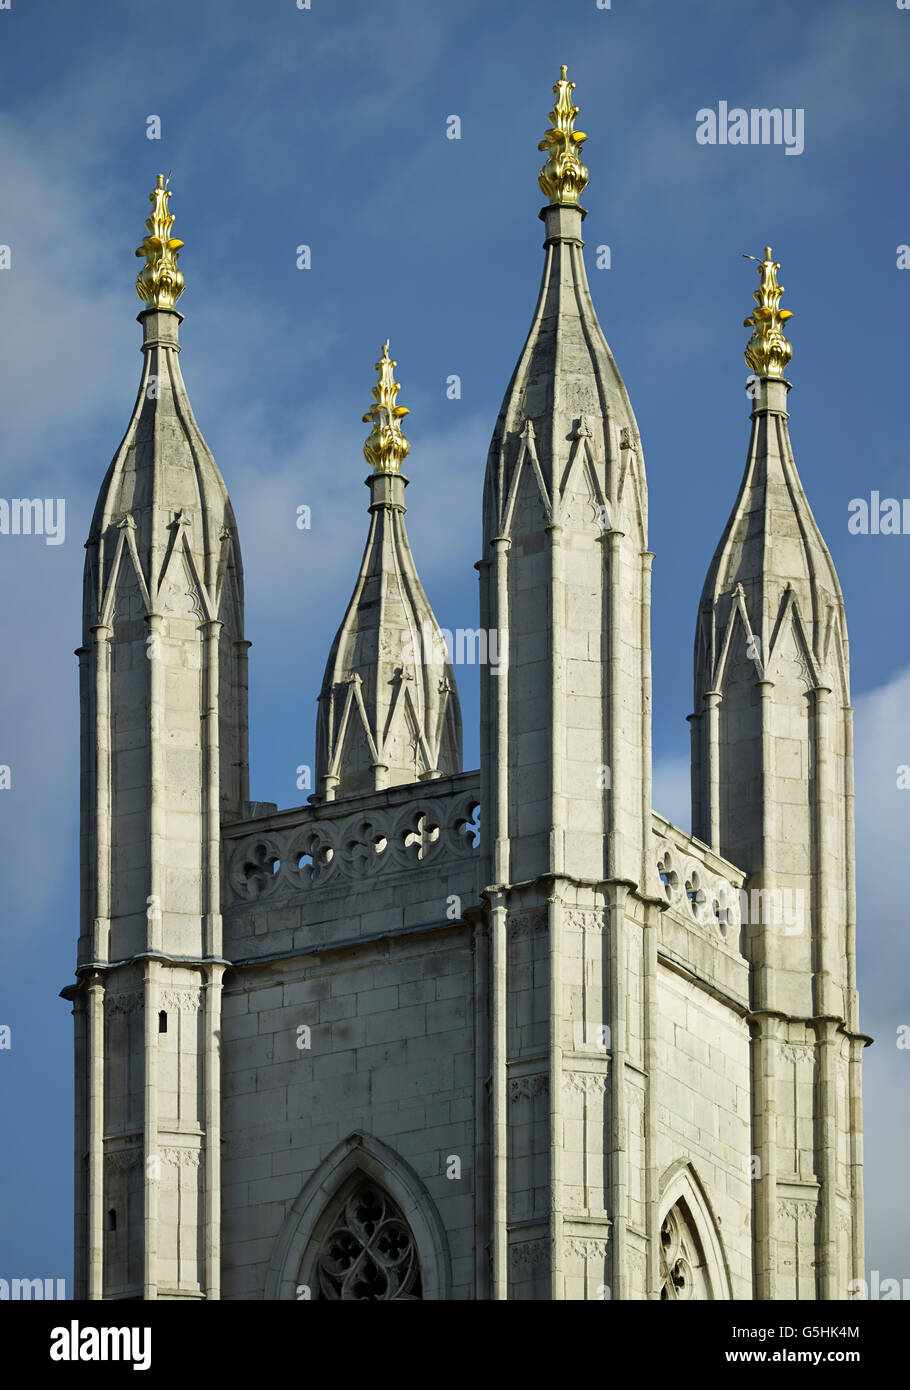 St Mary Aldermary, church in the City of London, Gothic tower and pinnacles - Stock Image